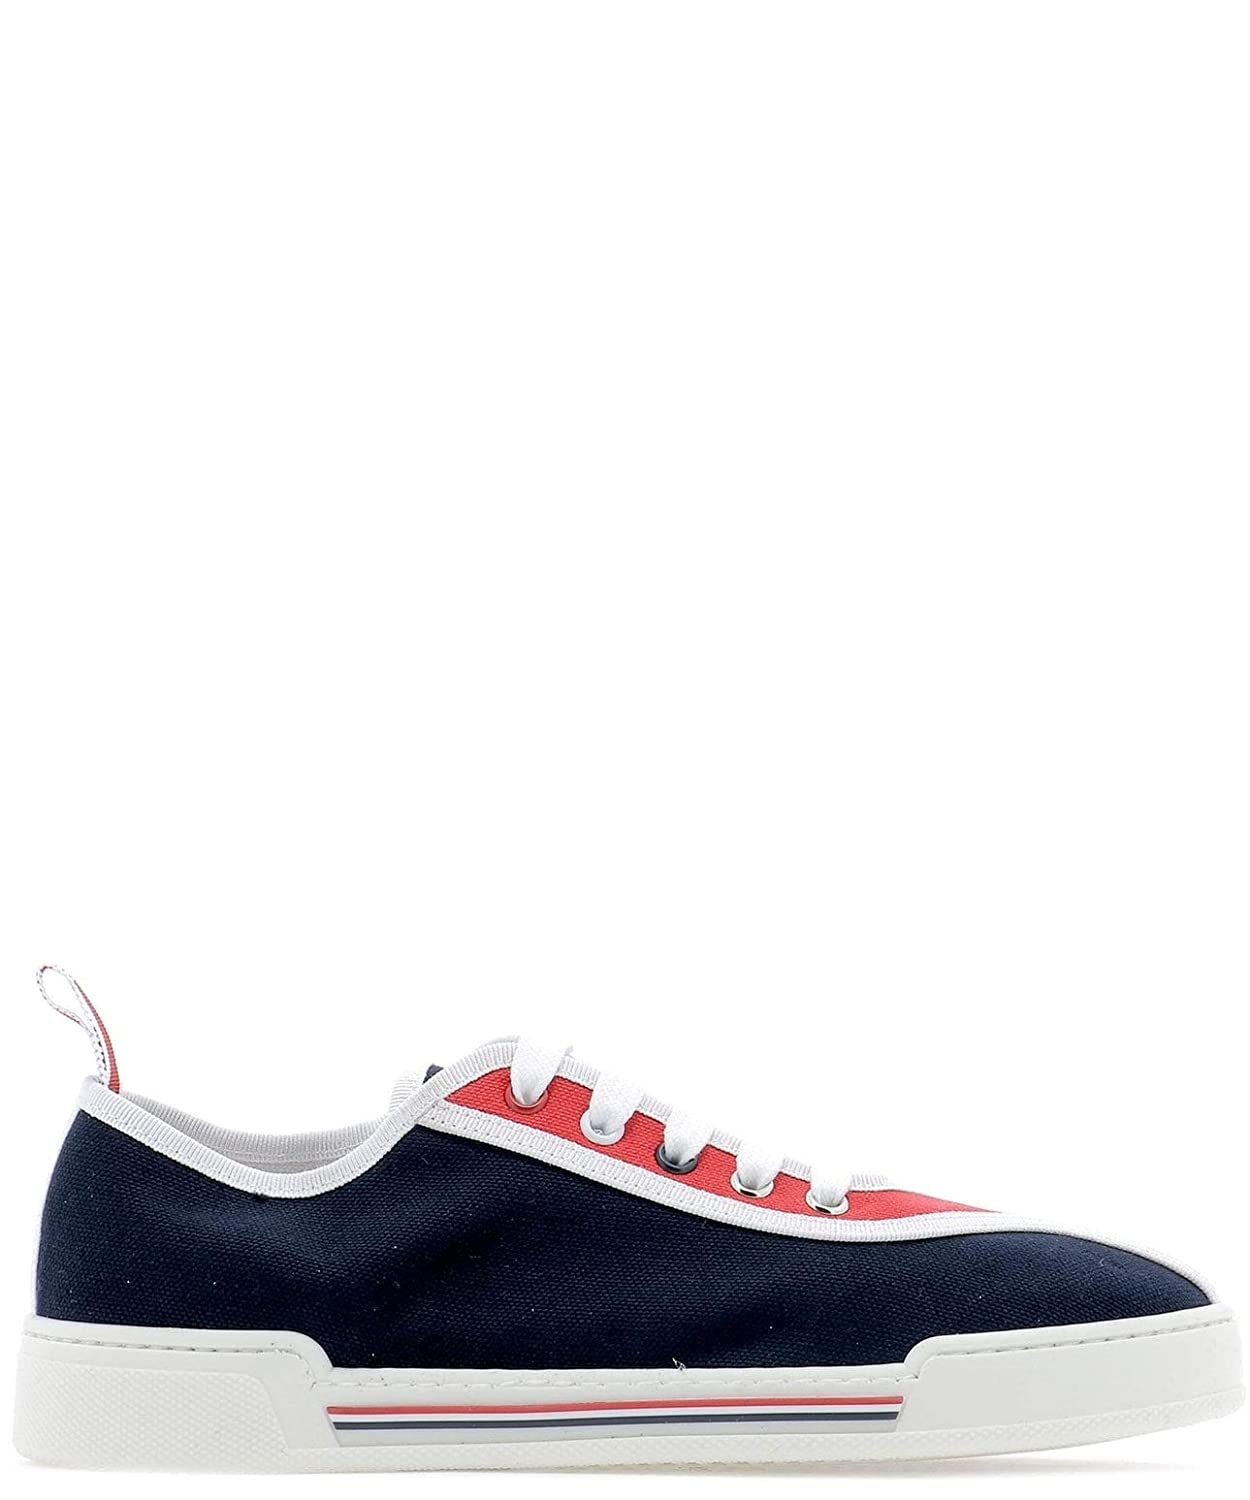 - THOM BROWNE Women's FFD033A04809960 bluee Fabric Sneakers